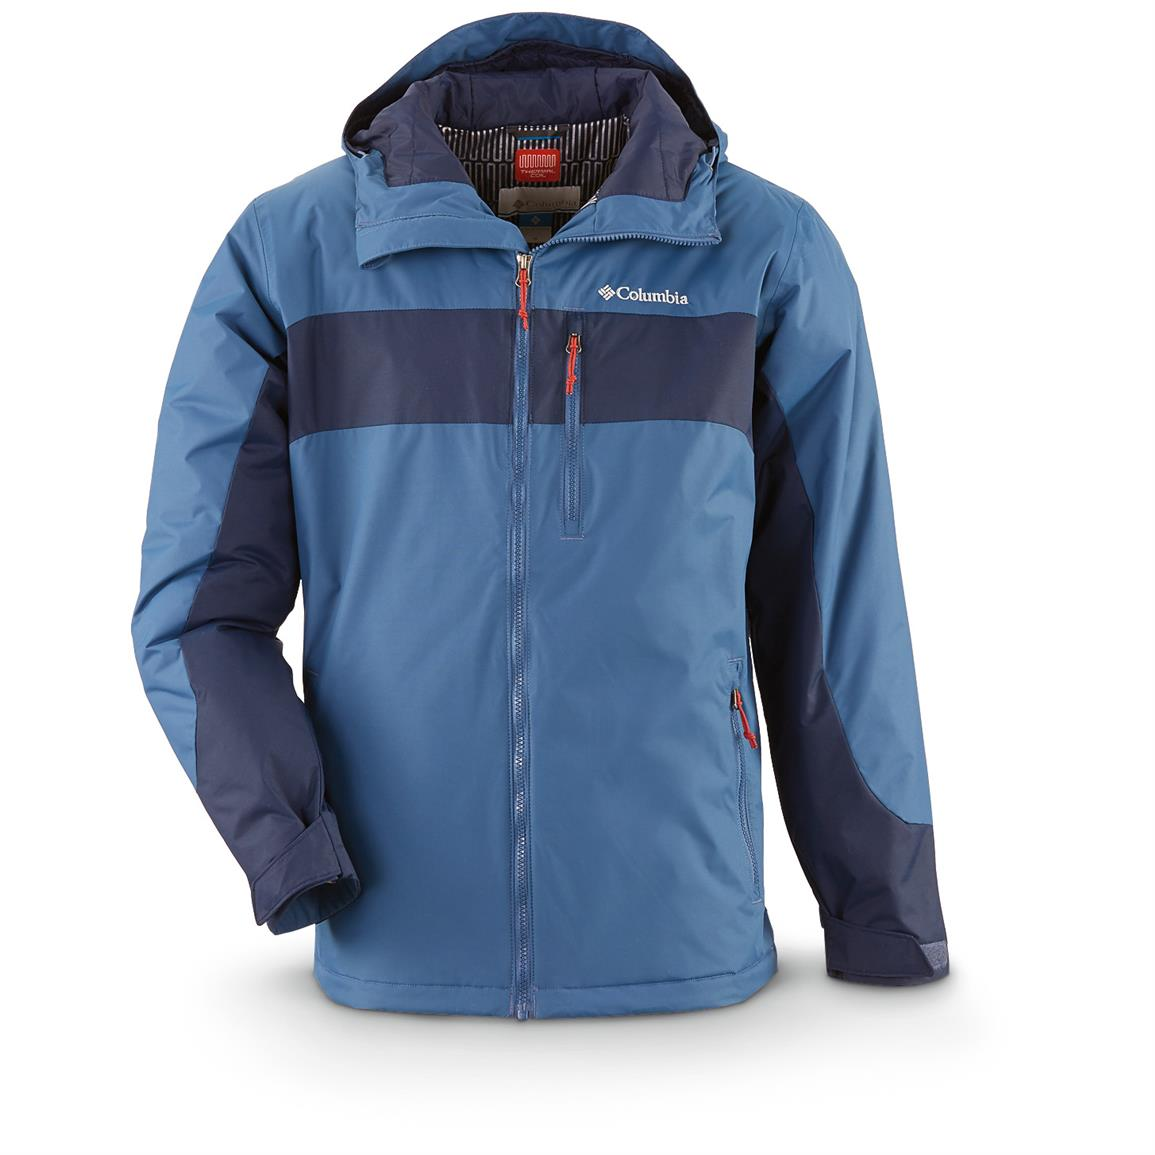 Columbia Men's Winterswept Insulated Waterproof Jacket, Night Tide / Coll Nvy